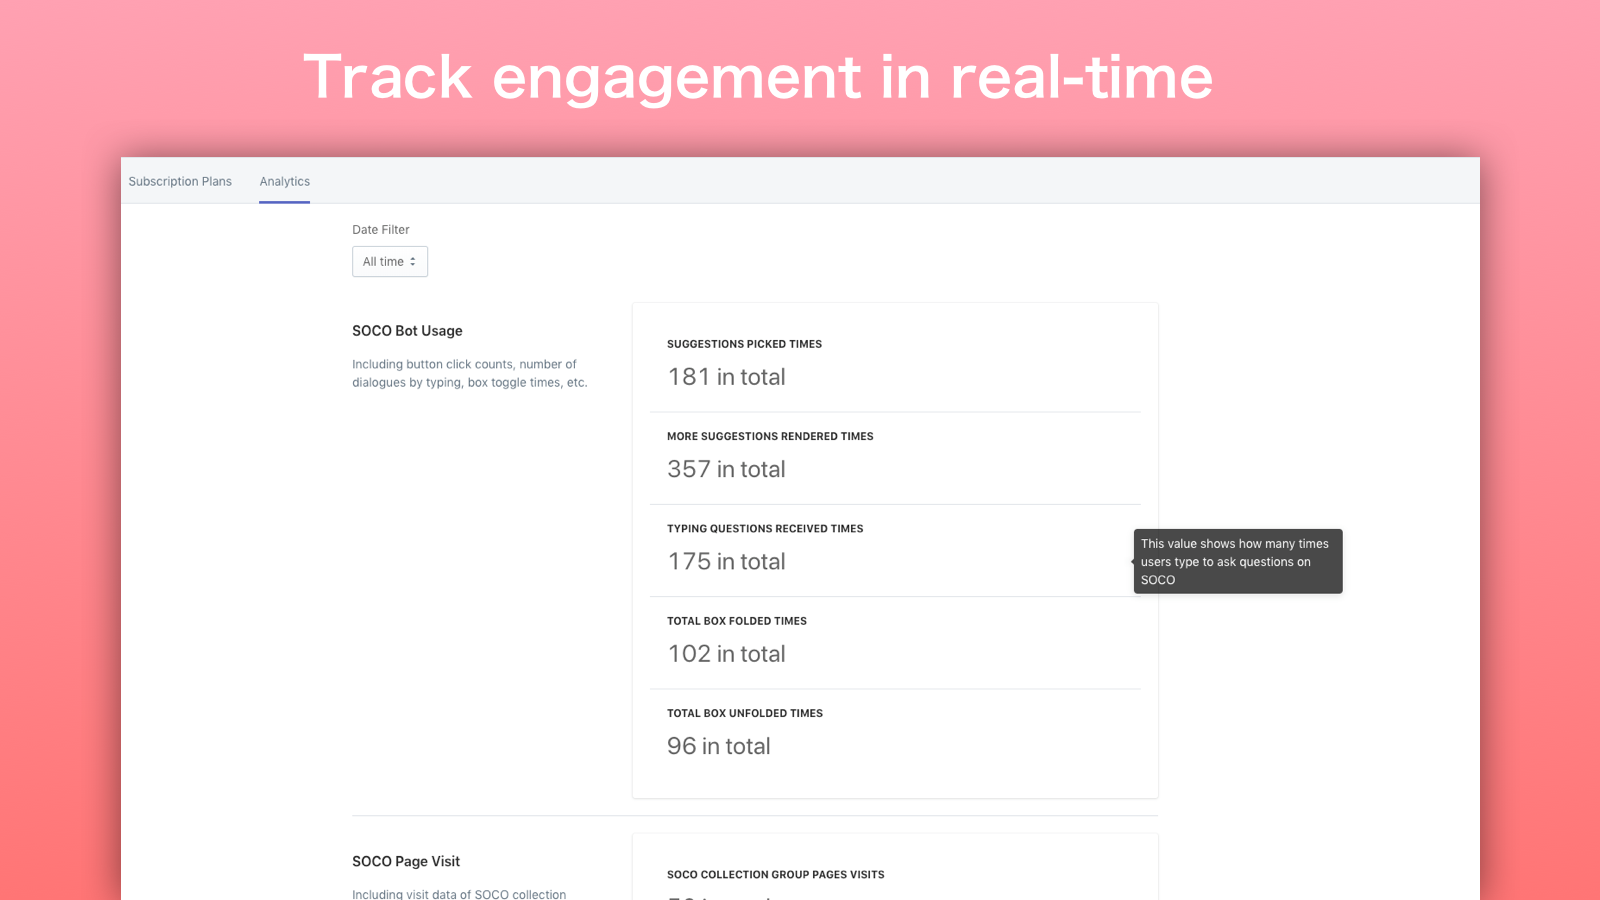 Task engagement in real-time